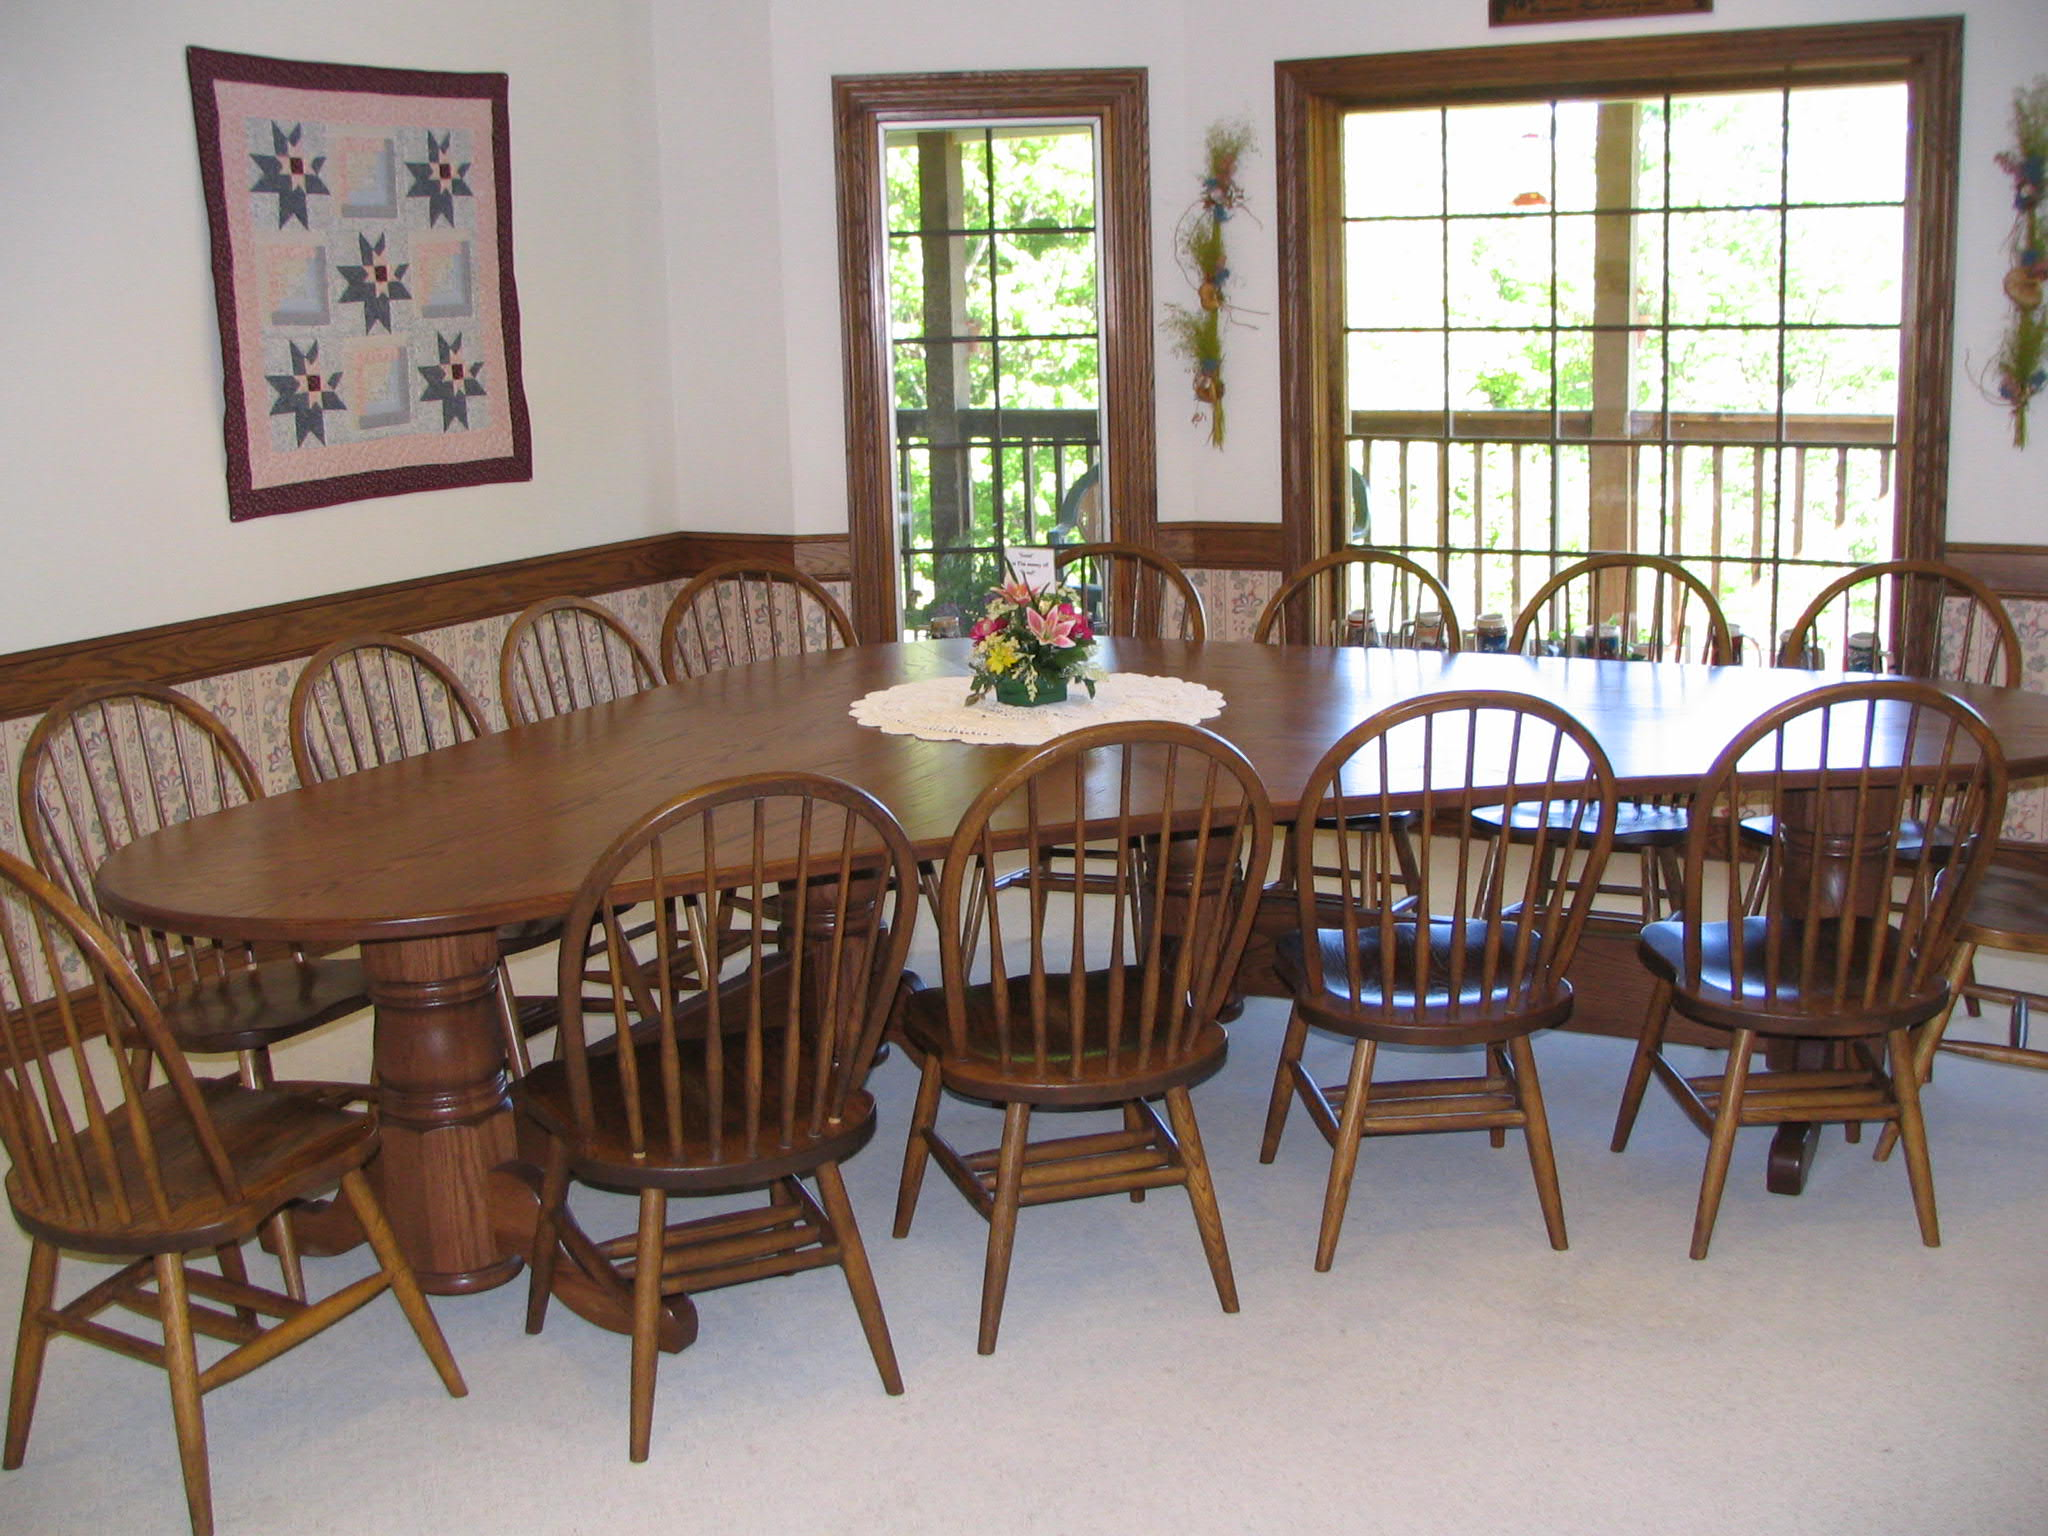 unusual dining chair ergonomic kenya unique room table w chairs northwood auctions